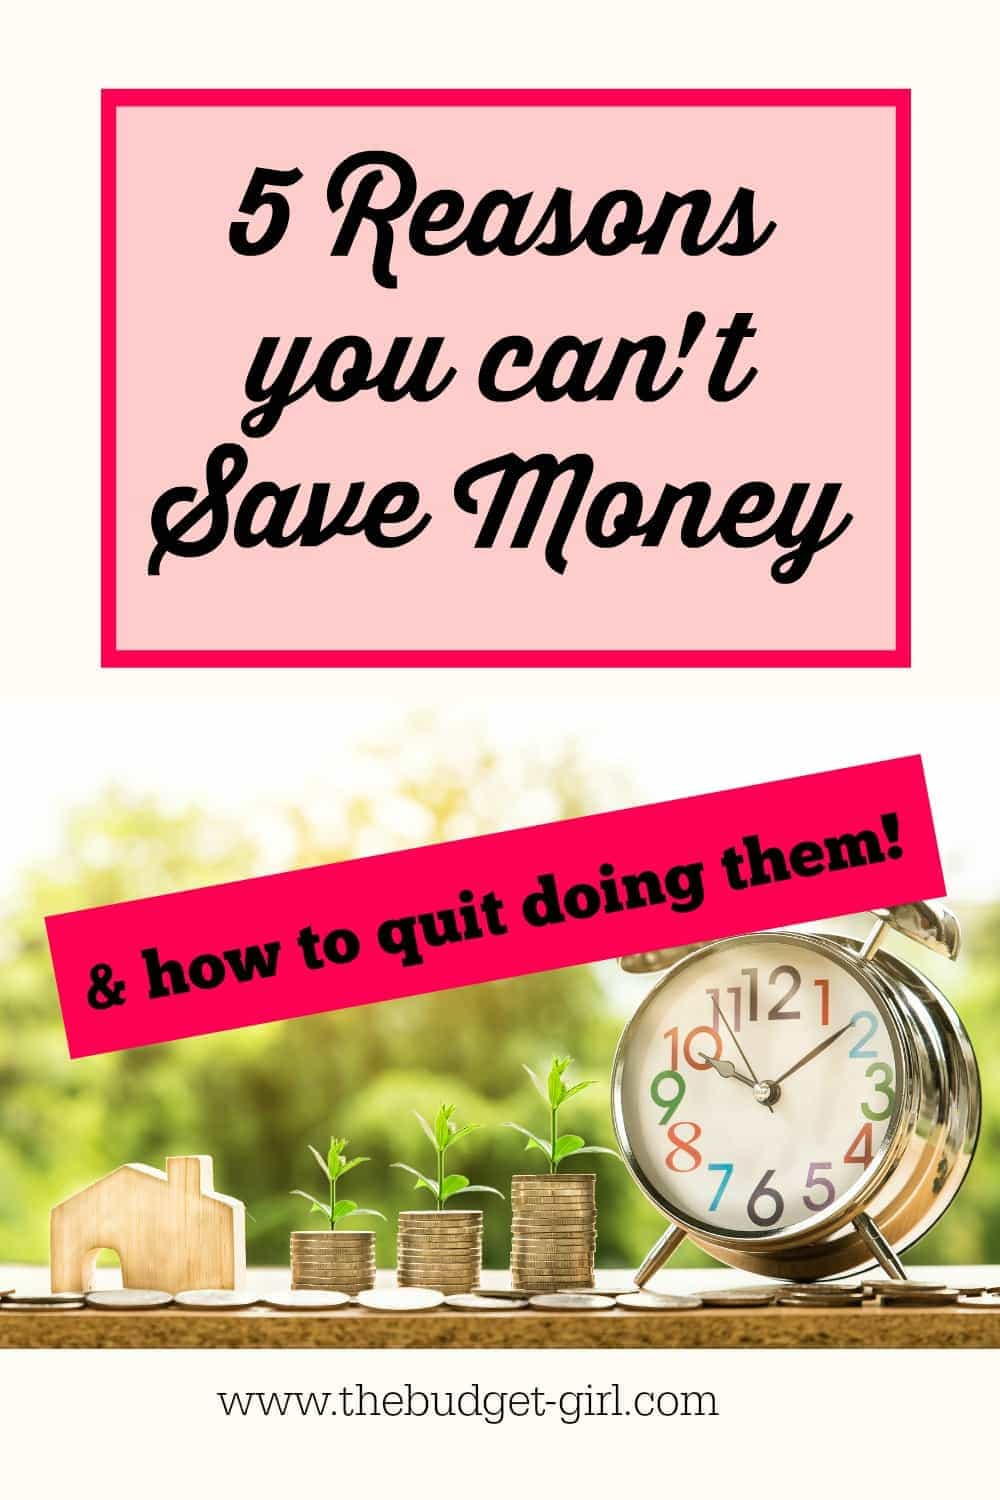 reasons you can't save money and how to quit doing them, save money fast